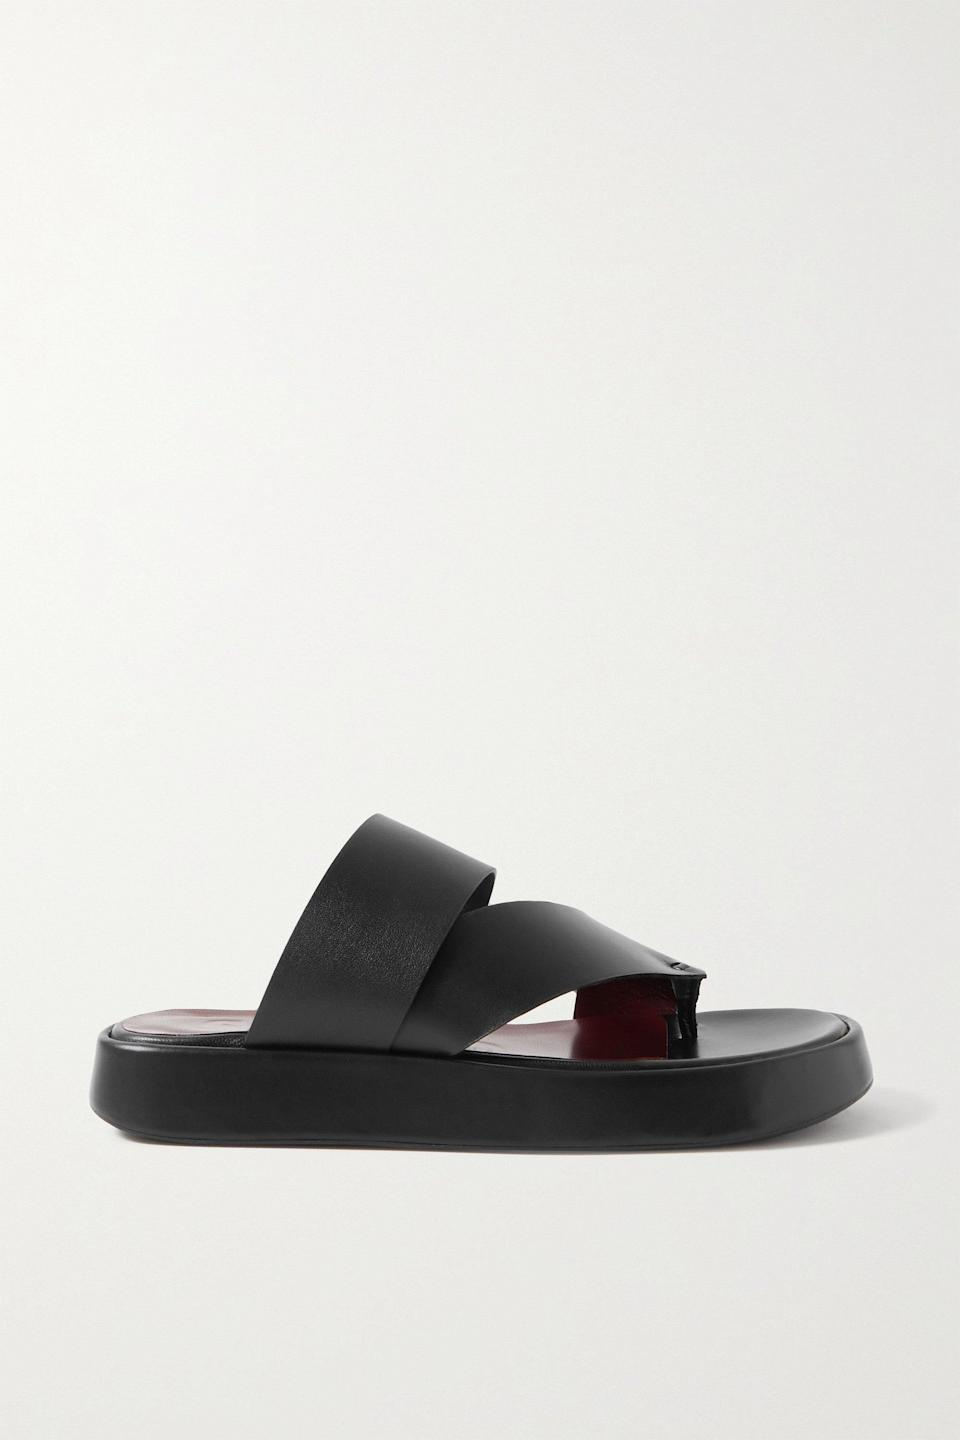 """What can I say? I love a chunky shoe! I'm into the burgundy sole and the leather looks really soft and comfy. I feel like they're going to become my go-to pair this summer.<br><br><strong>Staud</strong> Fly Leather Platform Sandals, $, available at <a href=""""https://www.net-a-porter.com/en-gb/shop/product/staud/fly-leather-platform-sandals/1335265"""" rel=""""nofollow noopener"""" target=""""_blank"""" data-ylk=""""slk:Net-A-Porter"""" class=""""link rapid-noclick-resp"""">Net-A-Porter</a>"""